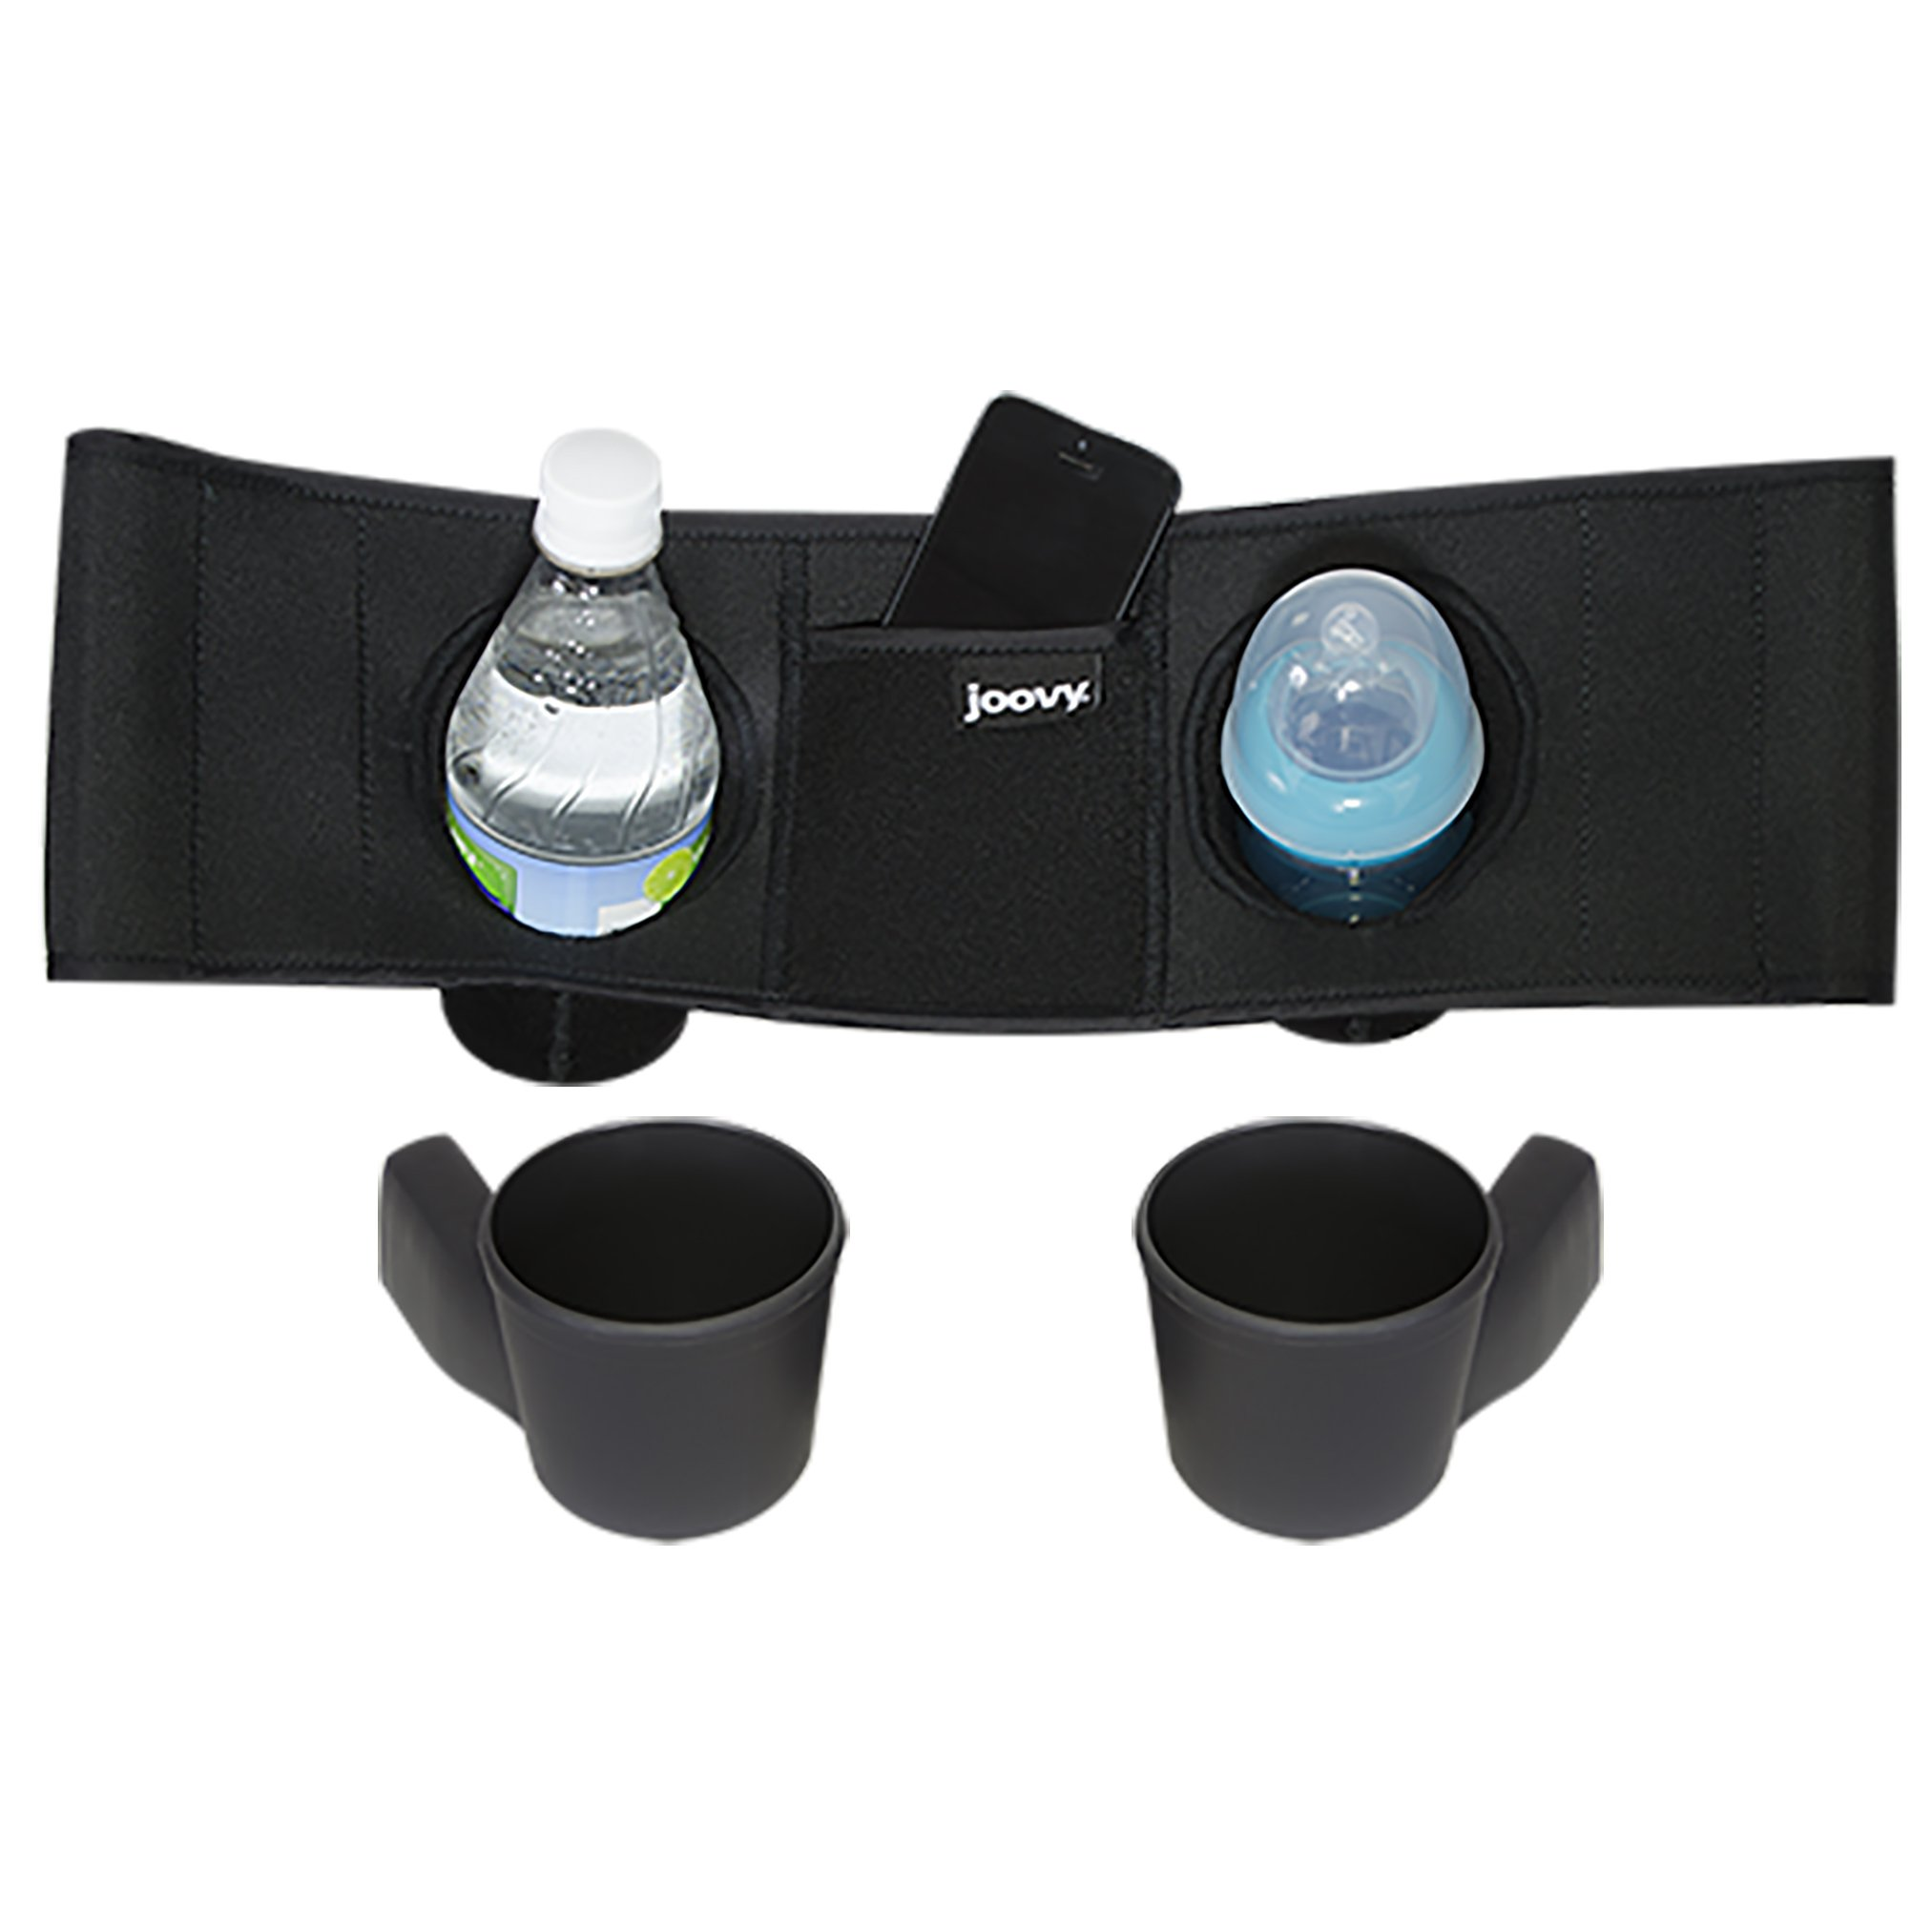 Joovy Caboose VaryLight Parent Organizer and Cup Holders, Black by Joovy (Image #1)